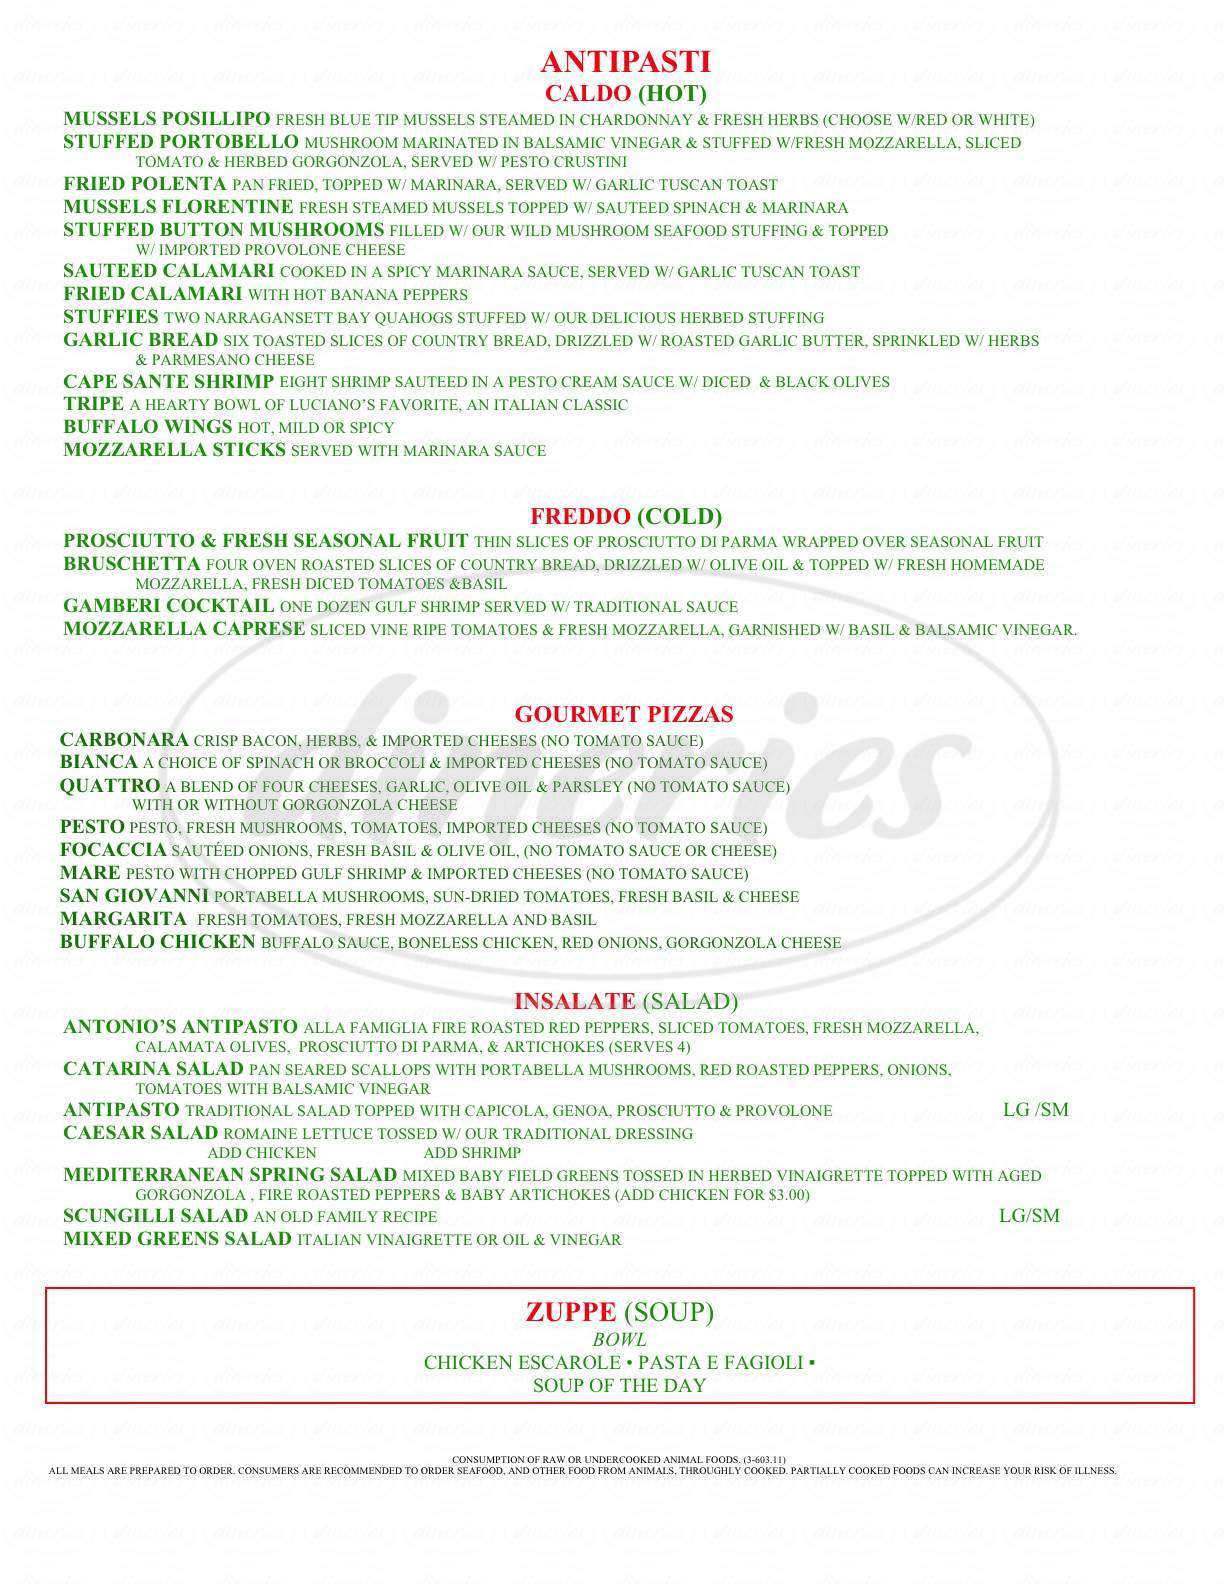 menu for Catarina's Italian Village